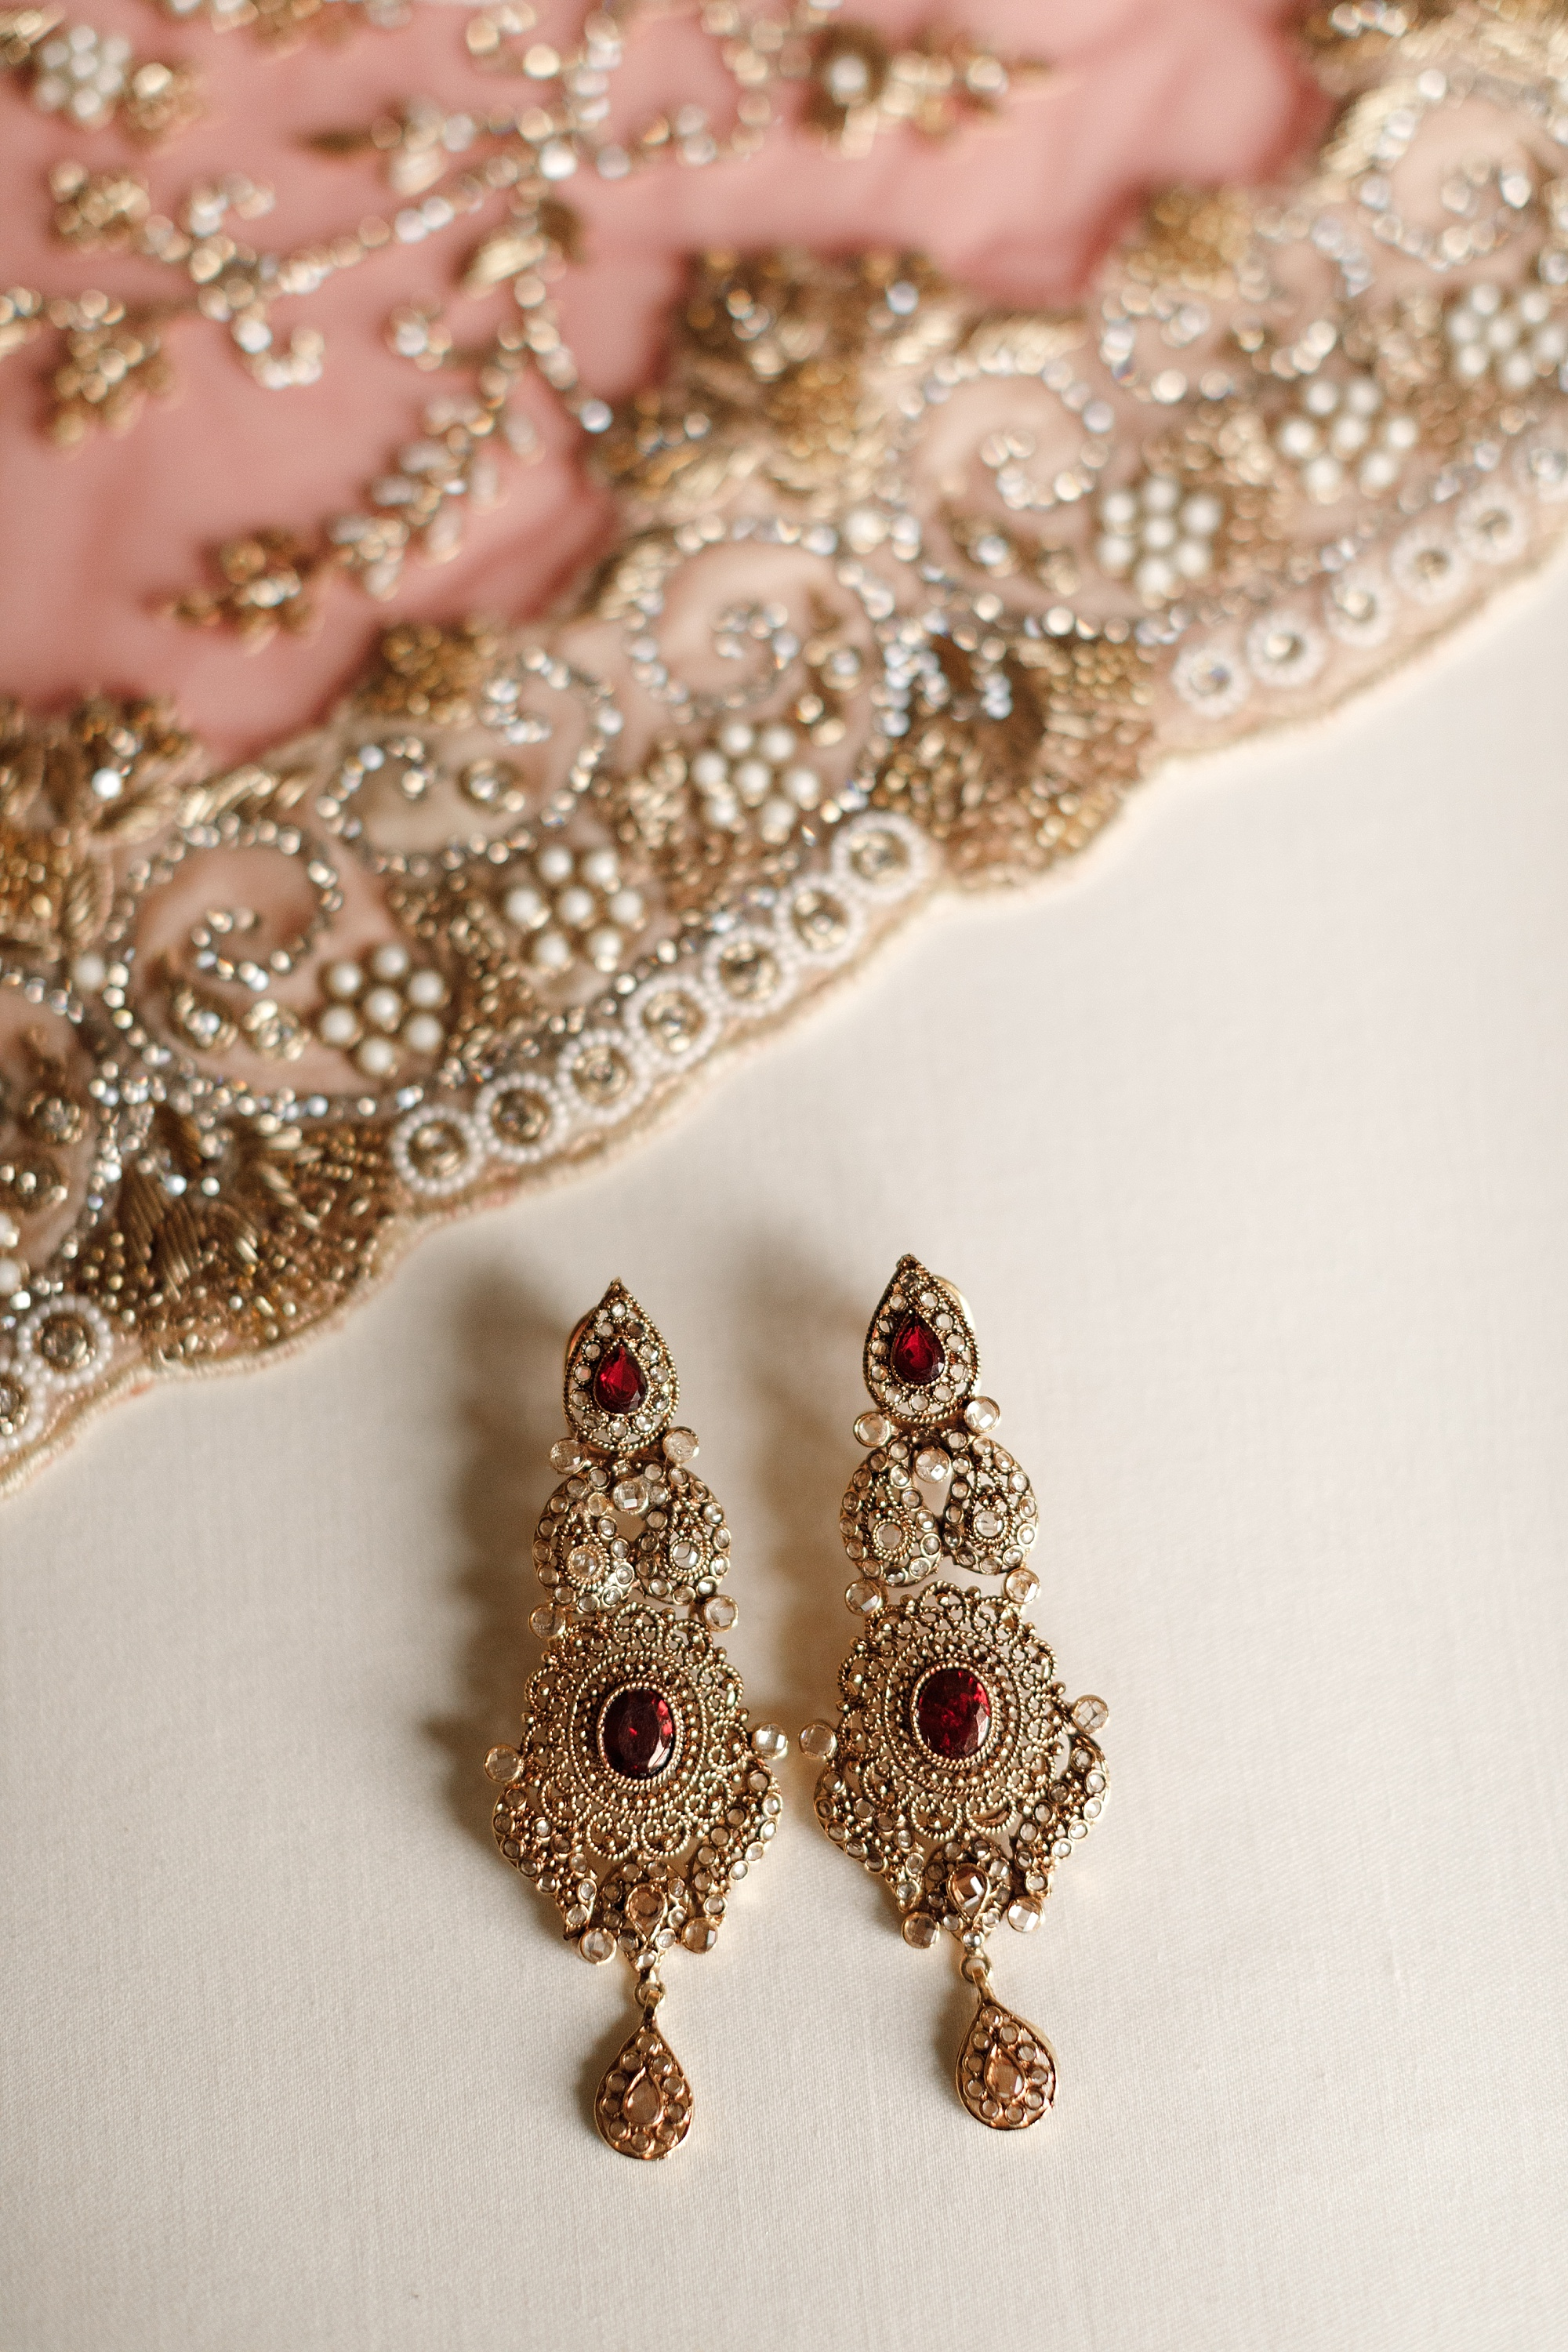 Pakistani wedding jewellery photography at Devonshire Dome